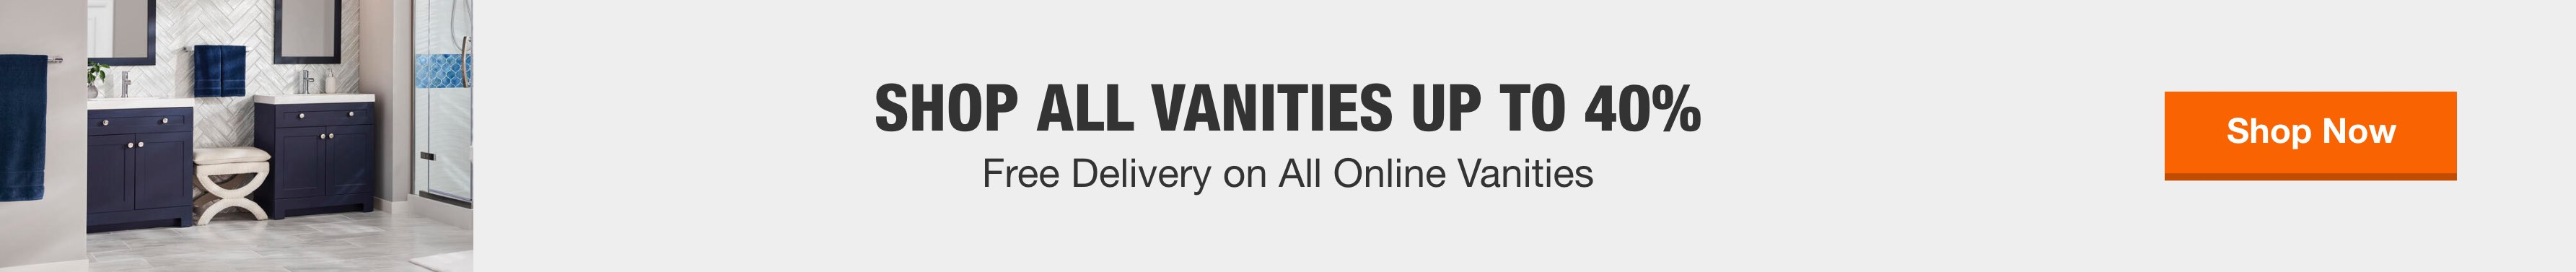 Free delivery on all online vanities